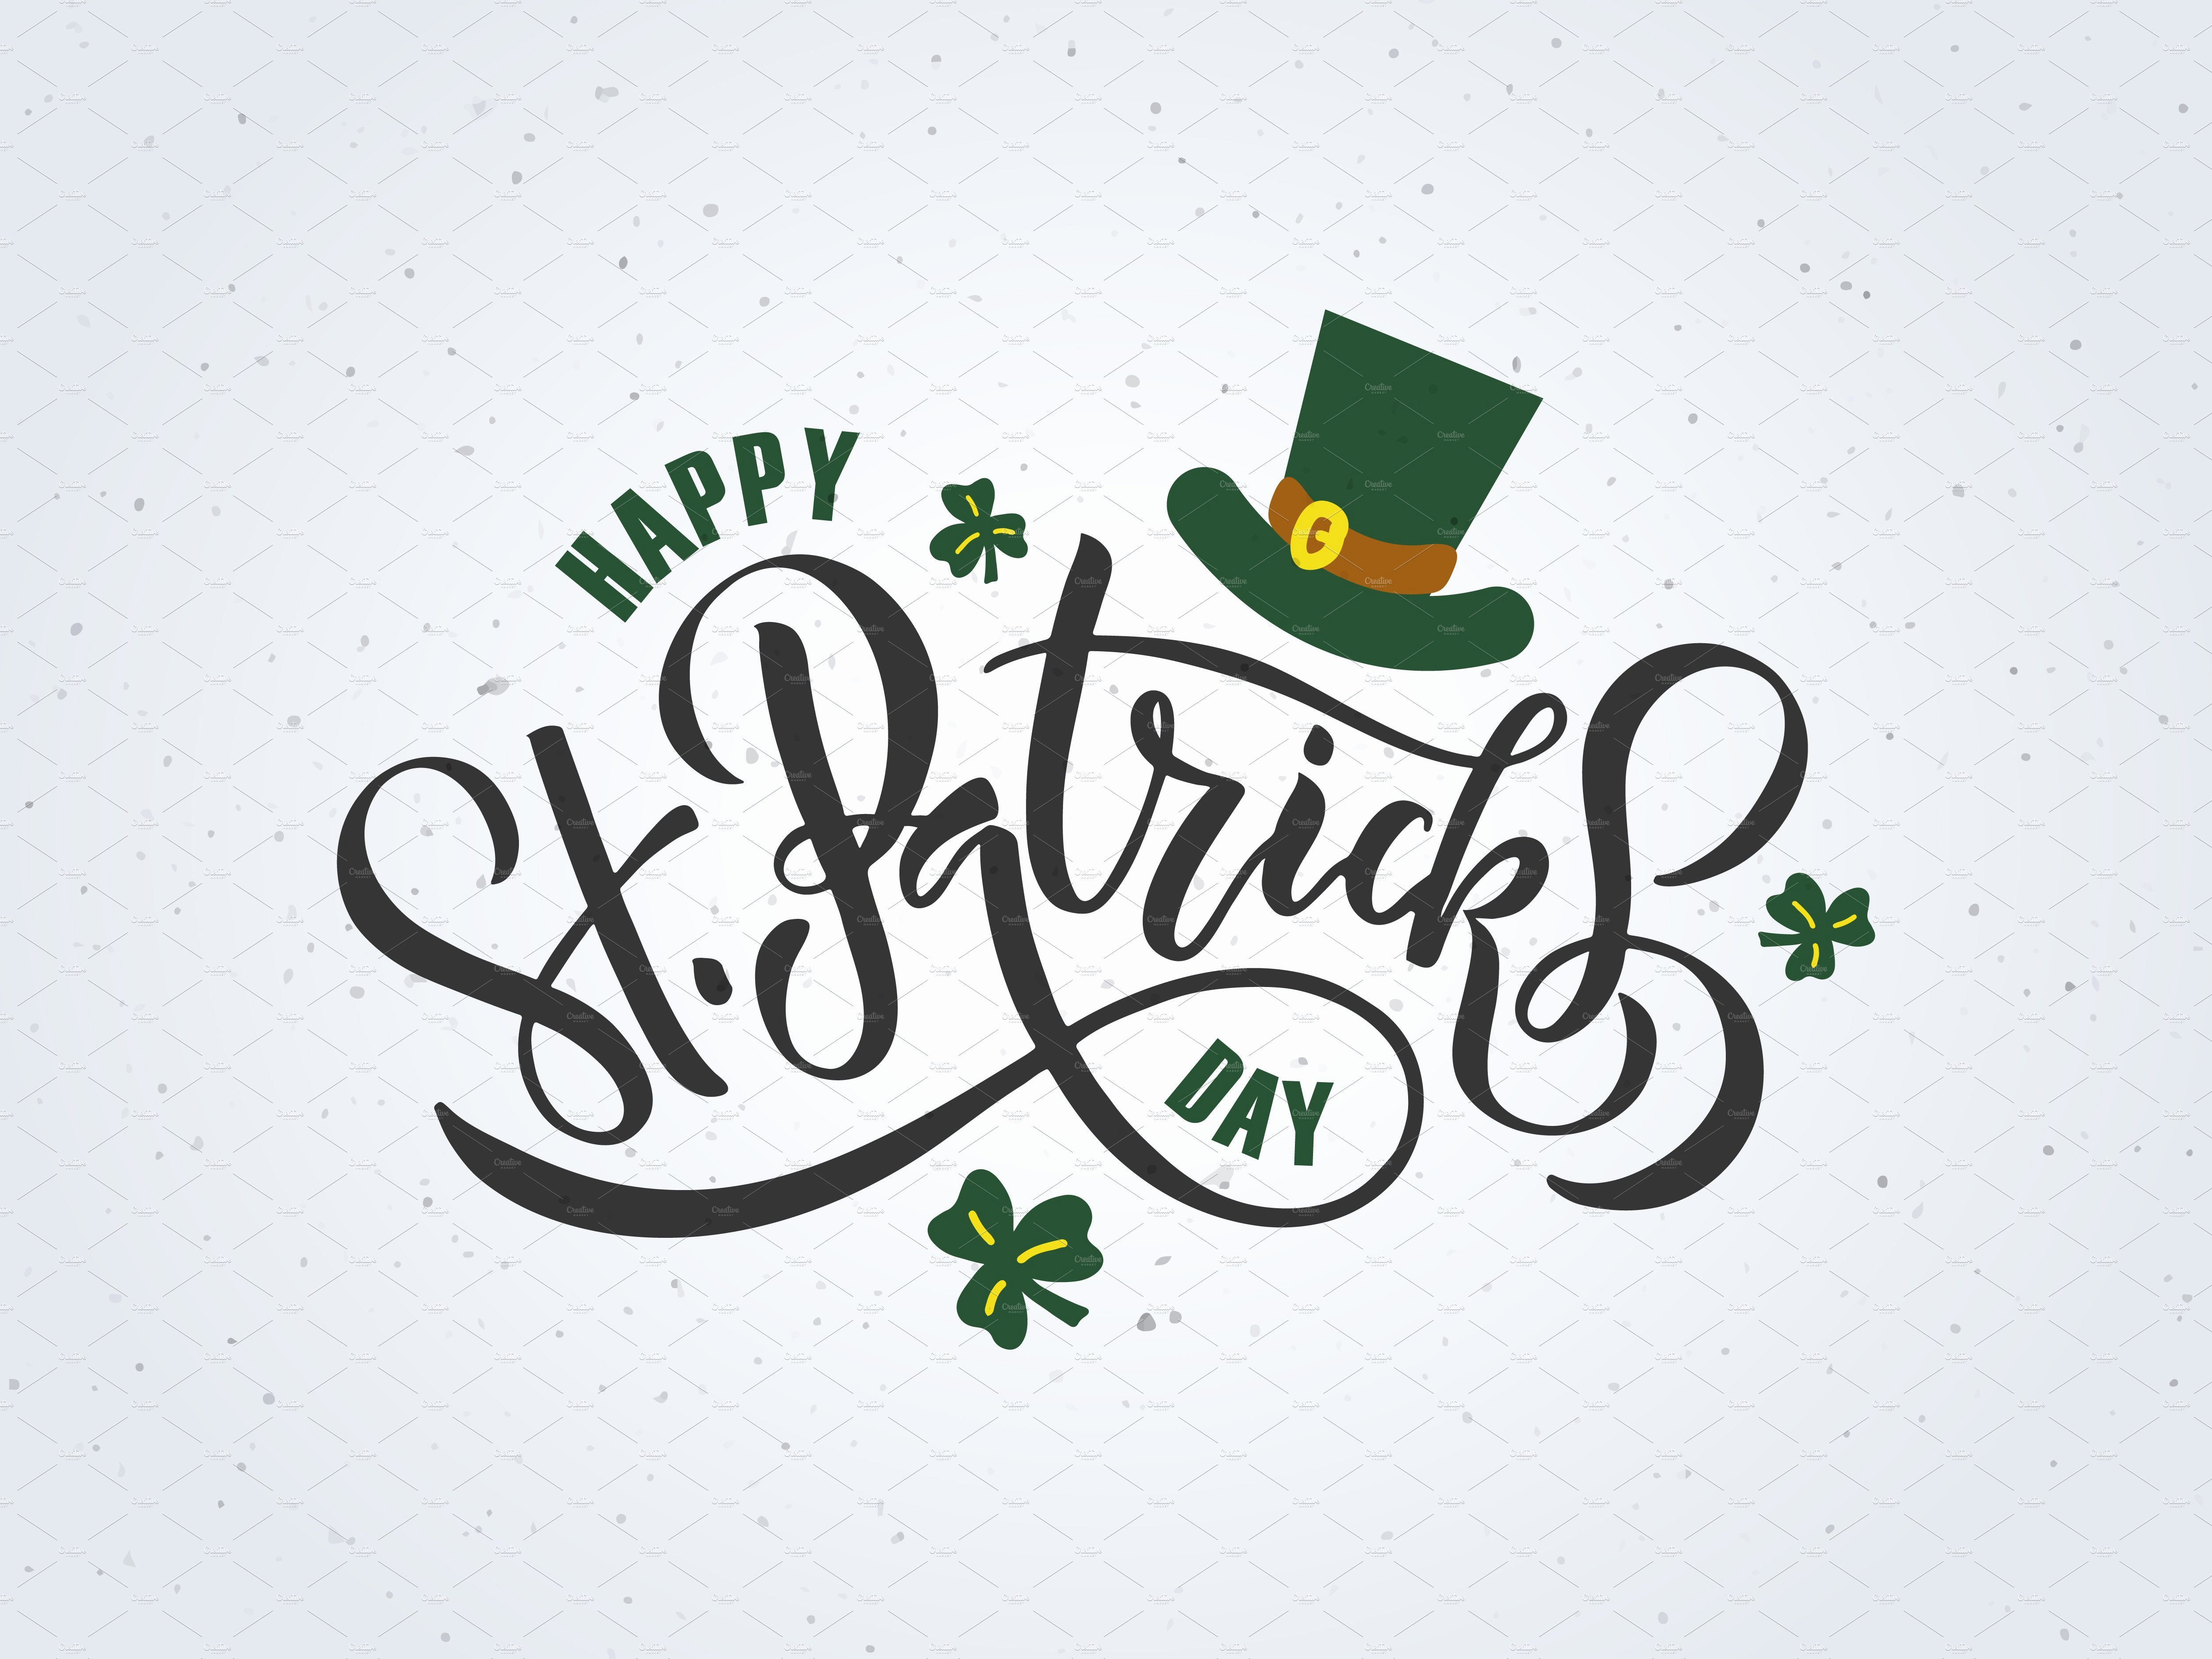 St Patrick Day Posters Inspirational St Patrick S Day Lettering Poster Templates Creative